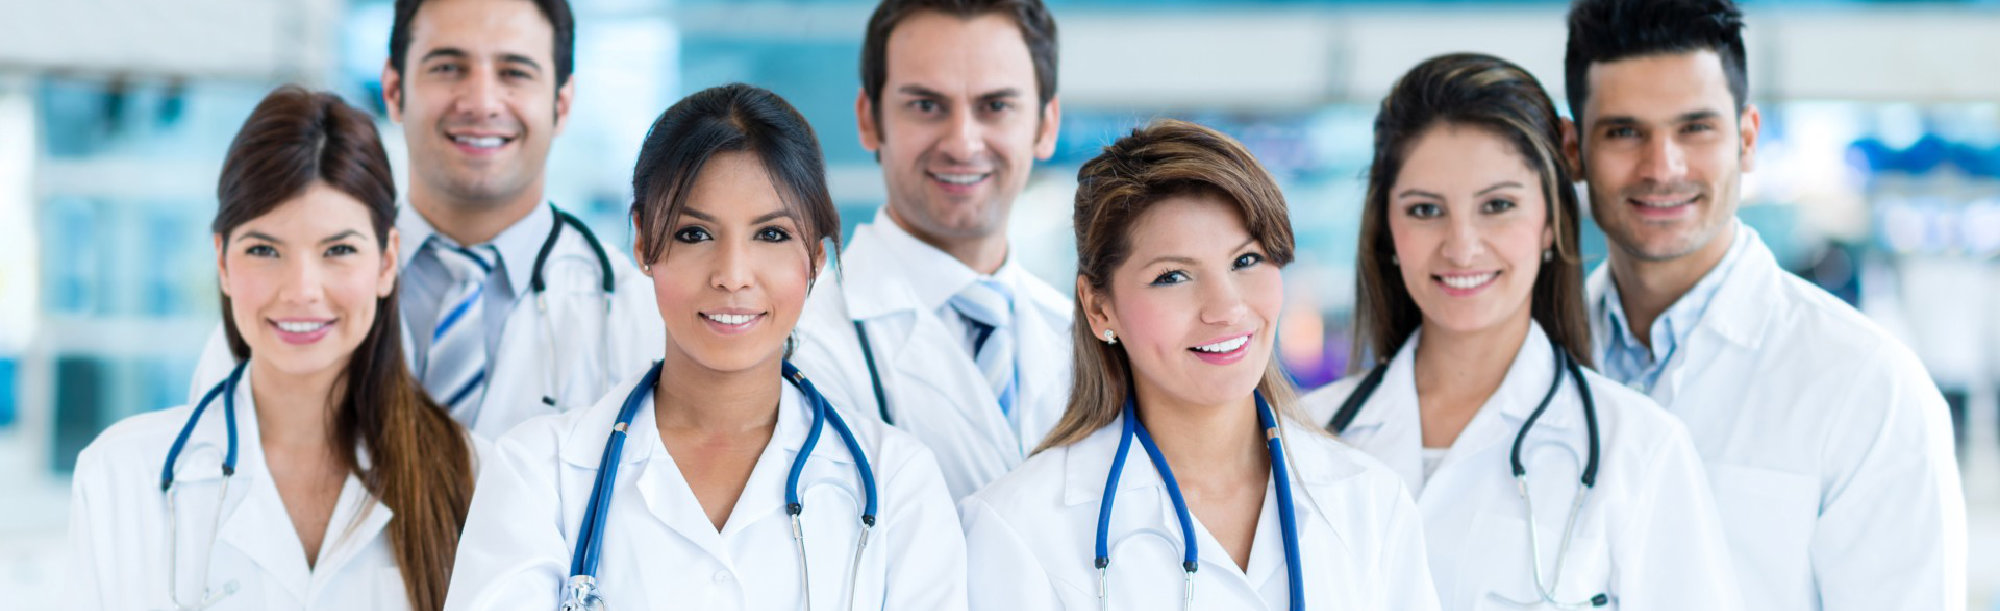 medical staffs with stethoscope